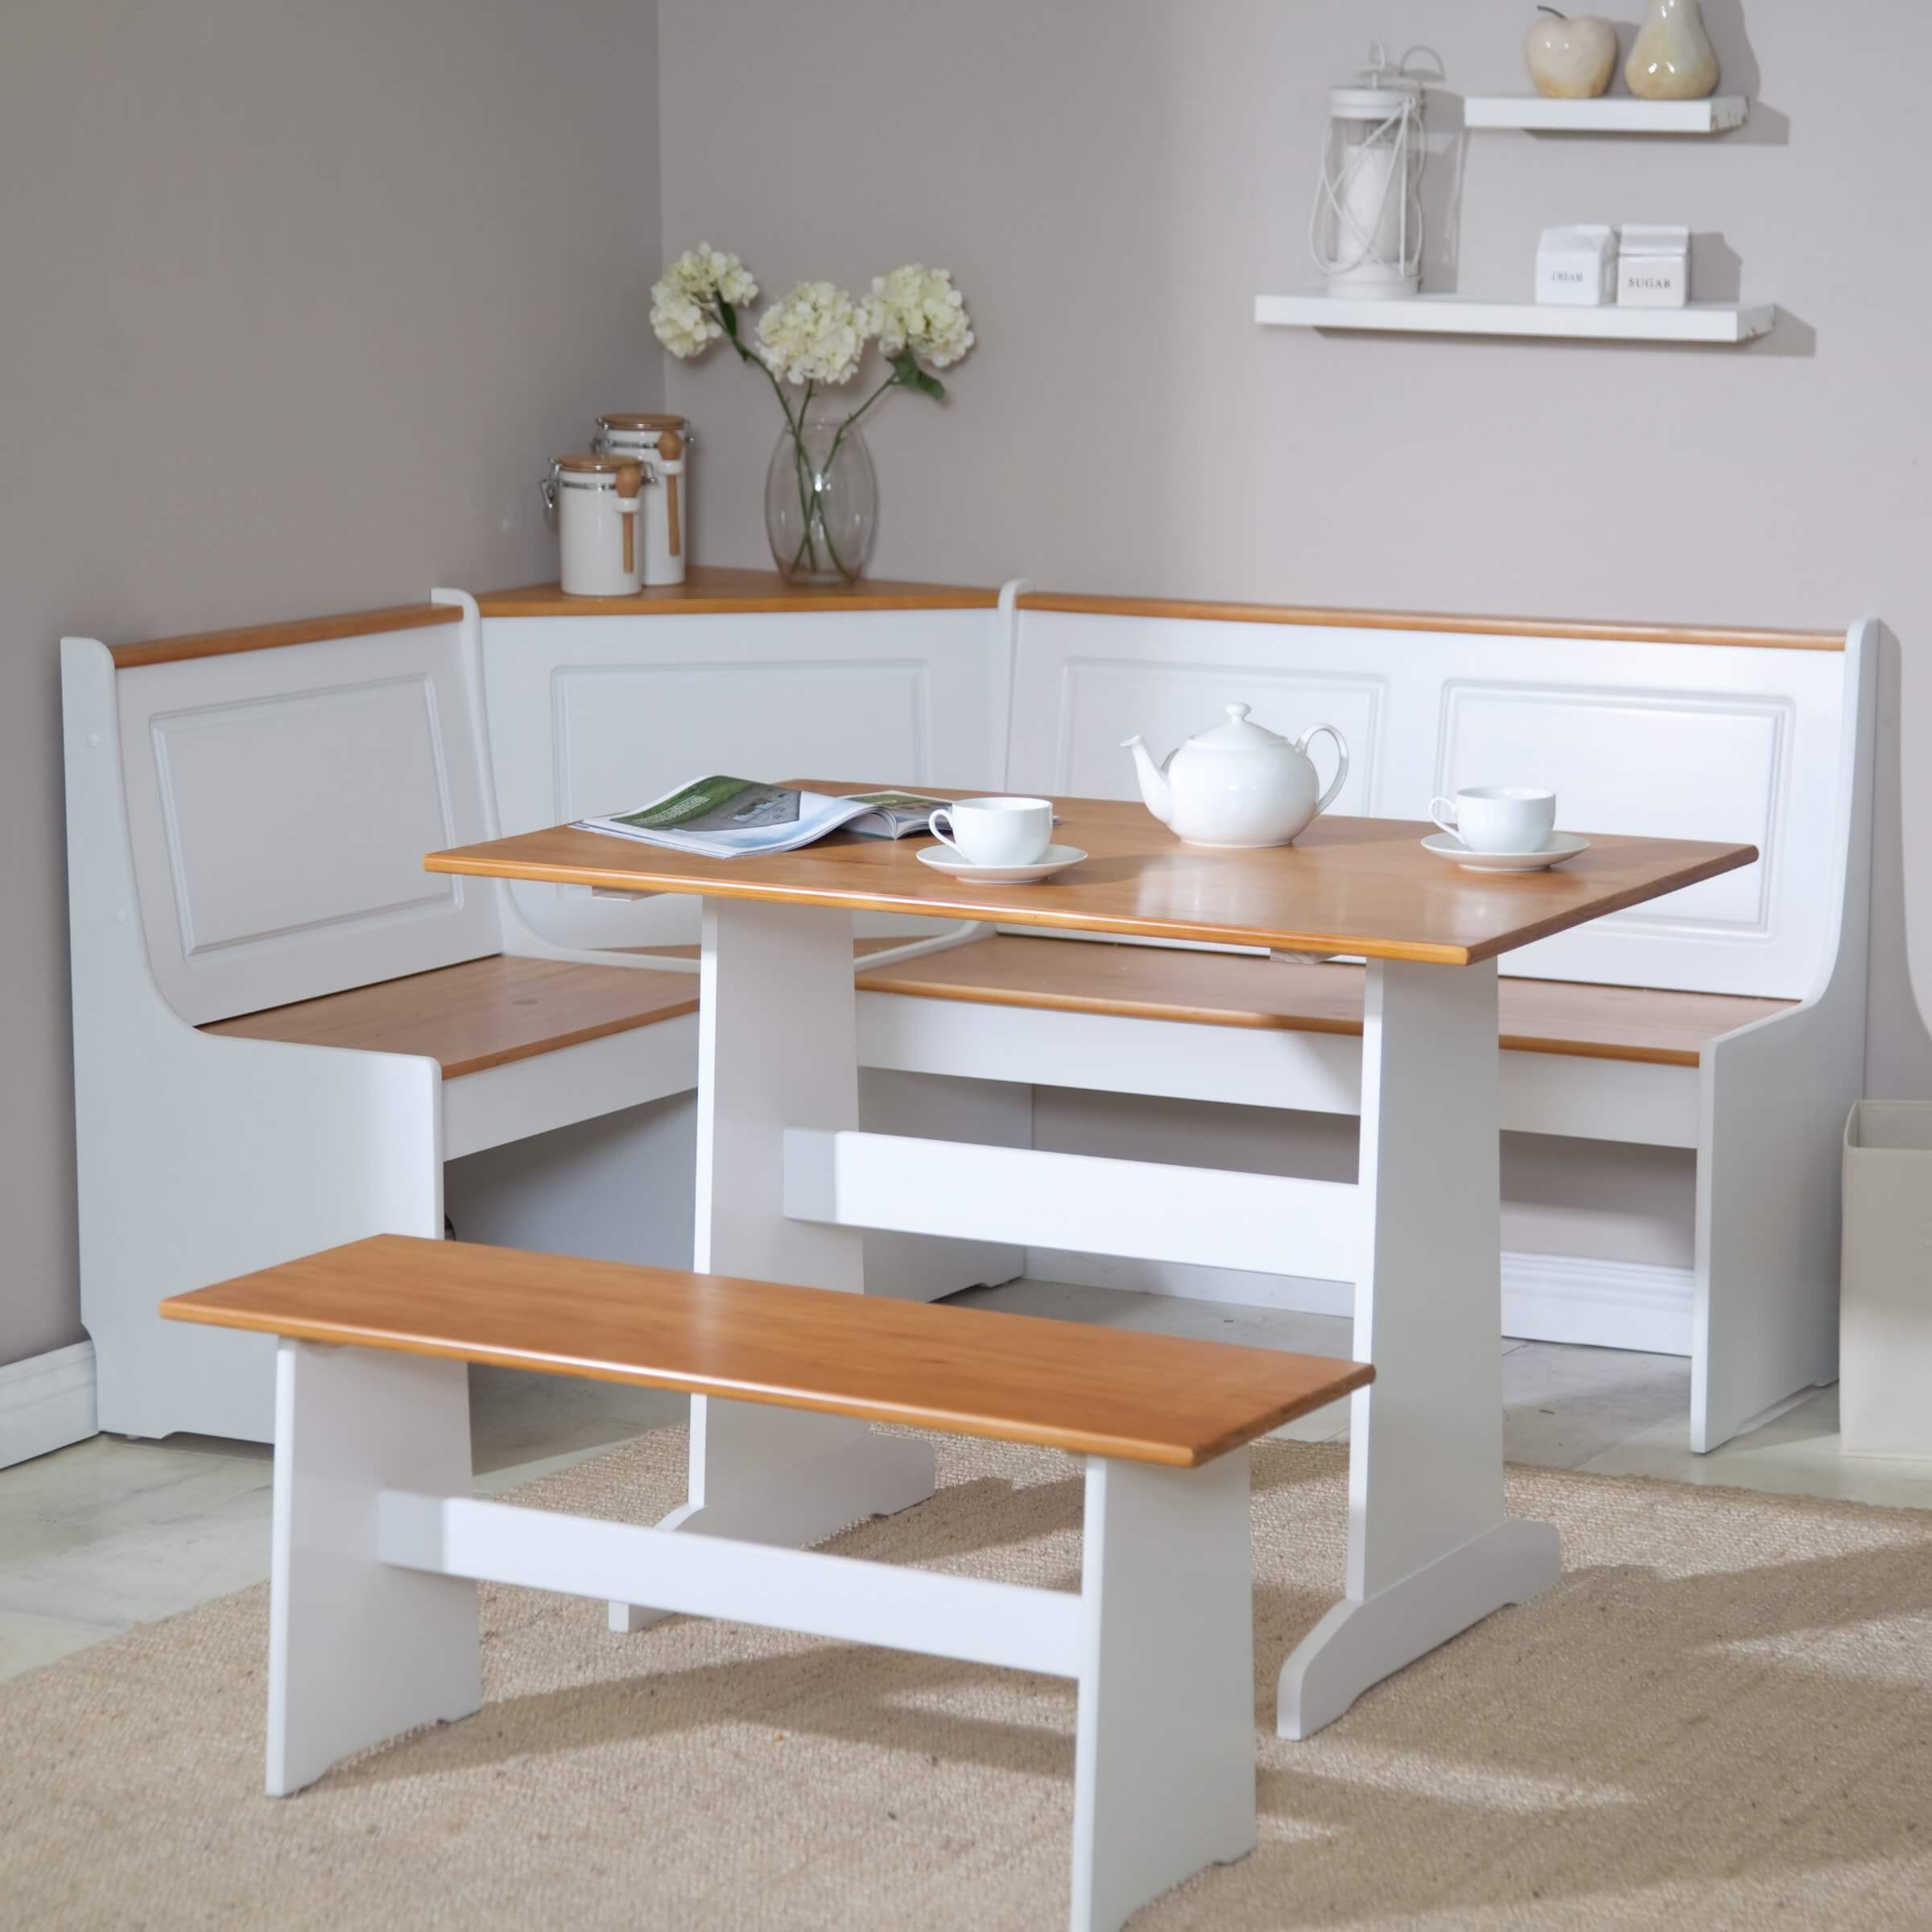 ardmore breakfast nook set - Breakfast Nook Kitchen Table Sets